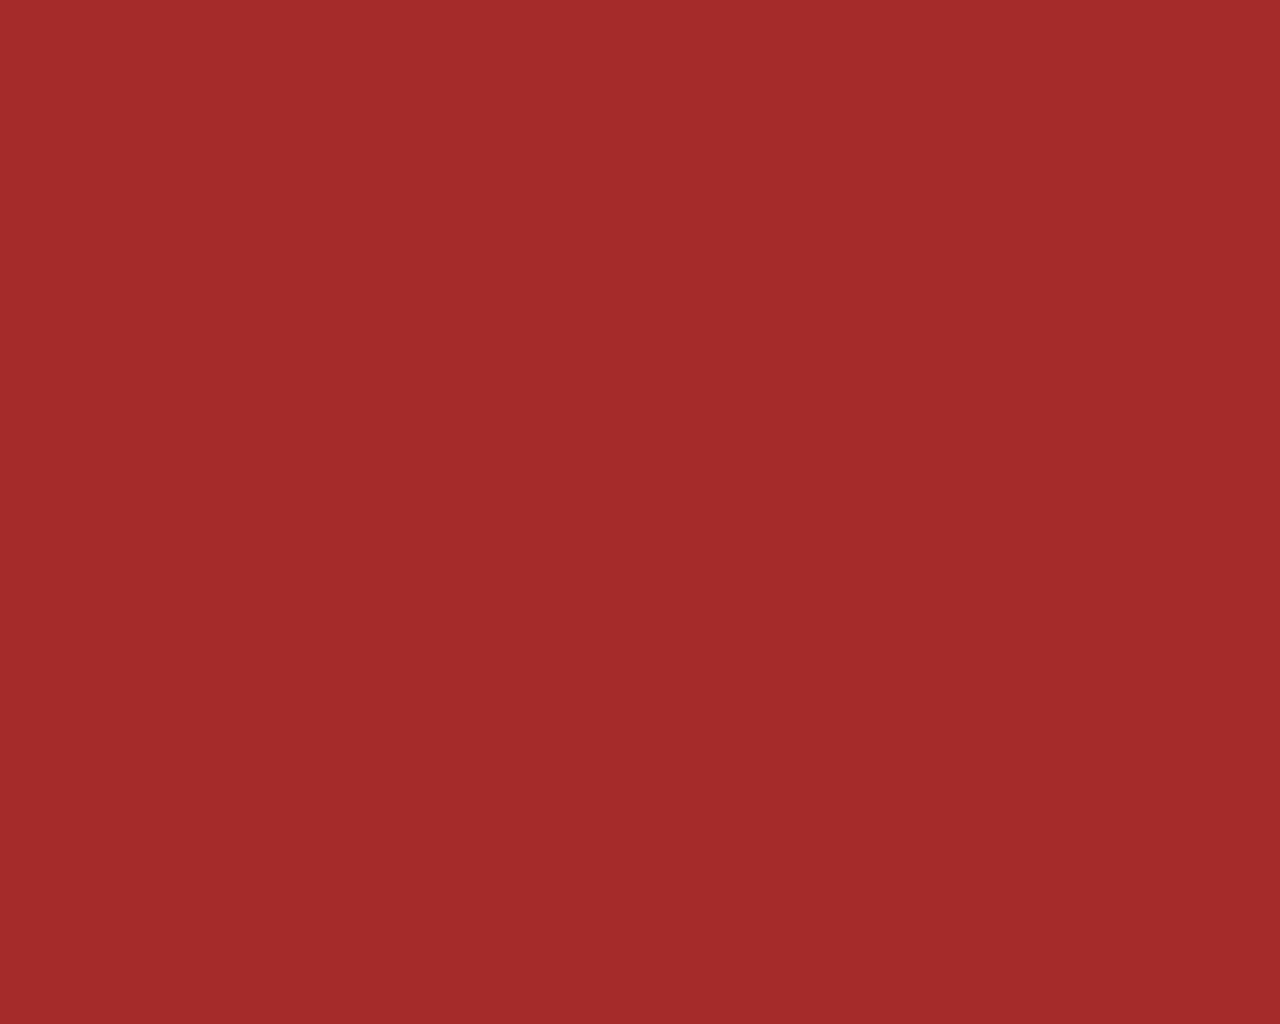 1280x1024 Red-brown Solid Color Background